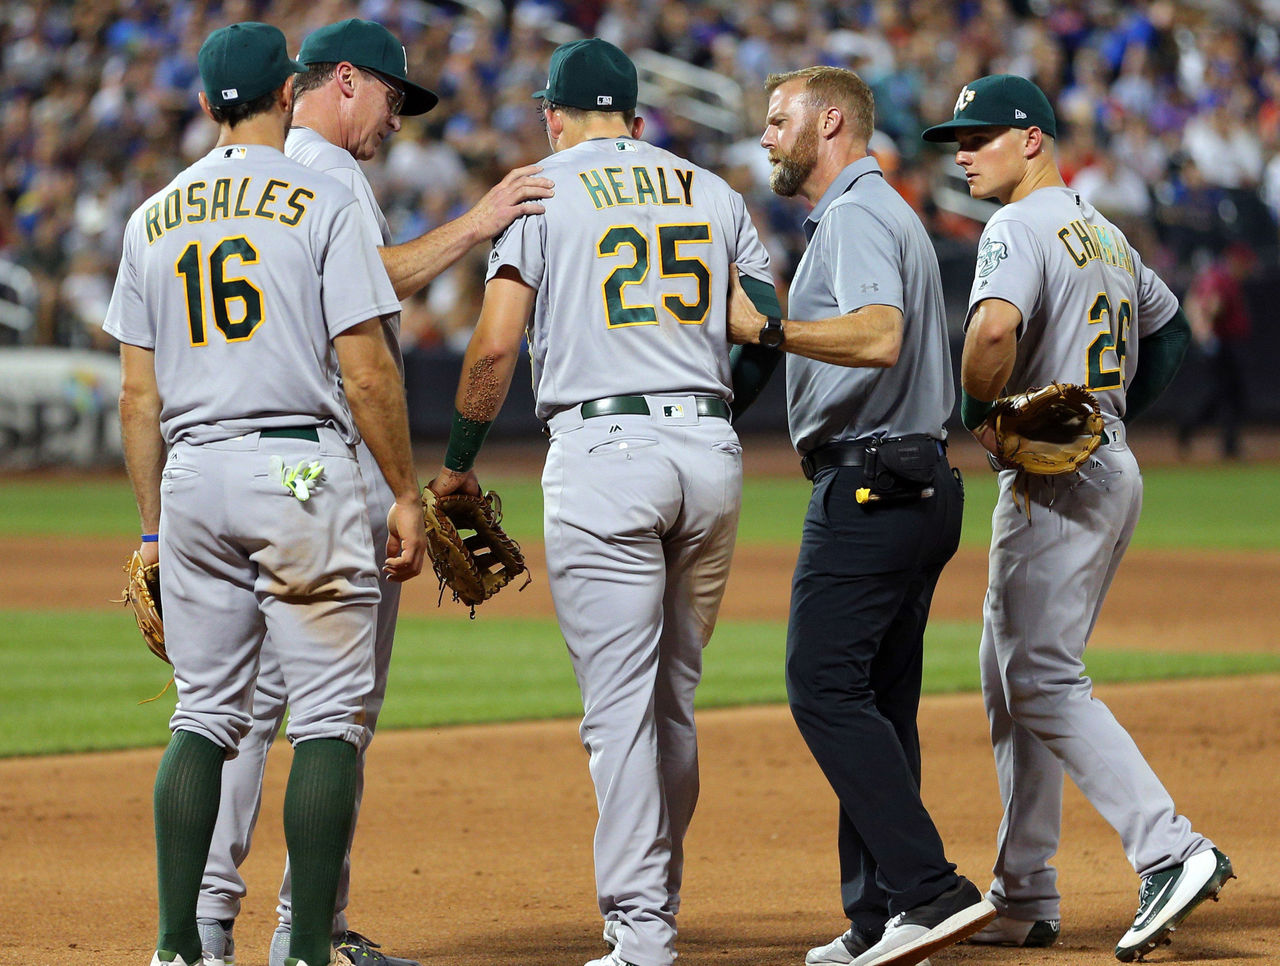 Cropped 2017 07 22t012506z 330120861 nocid rtrmadp 3 mlb oakland athletics at new york mets